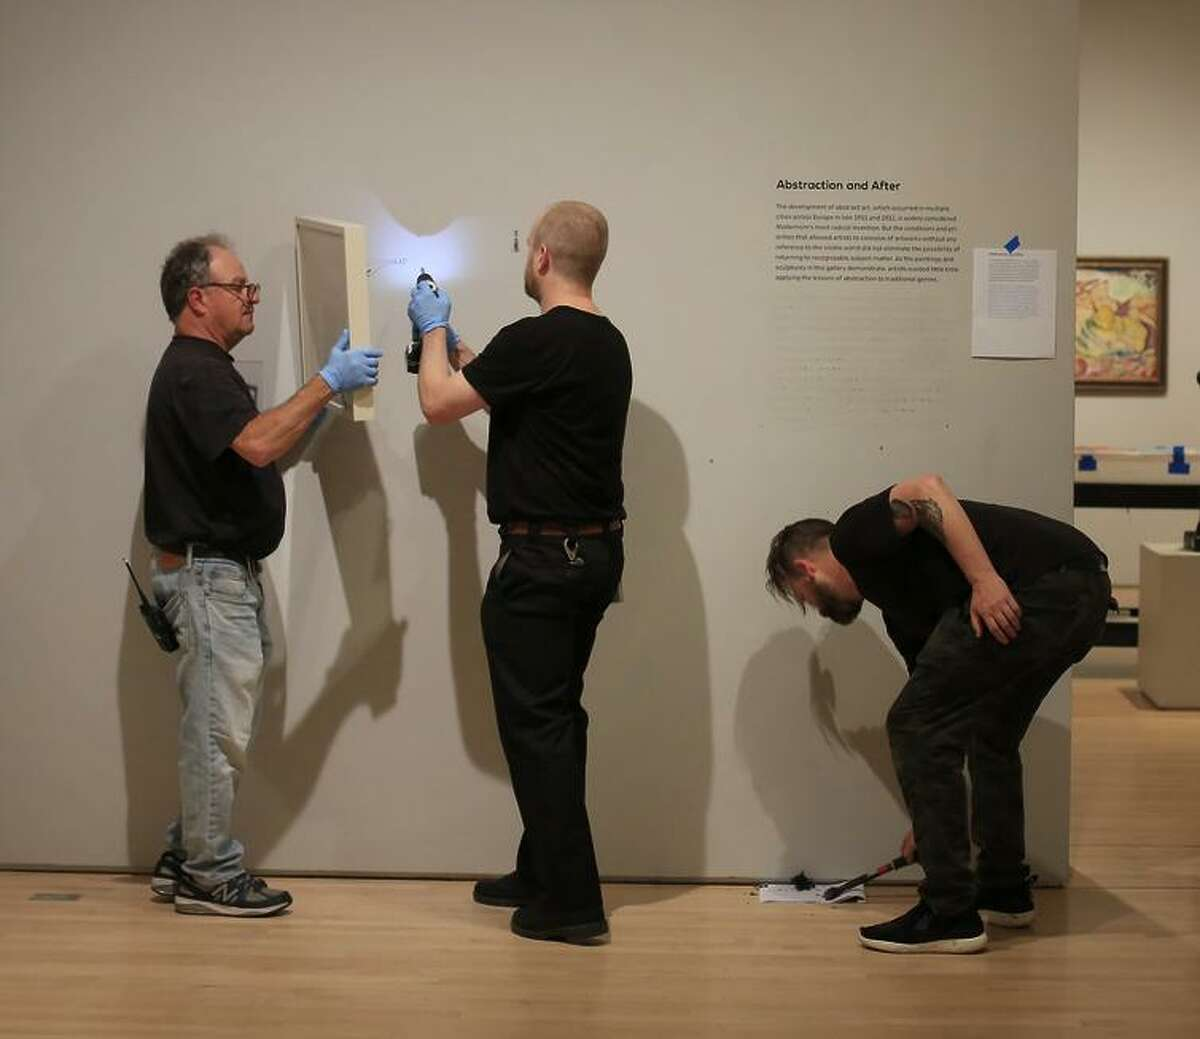 Rico Solinas (left) works on an installation with James Chronister and Kevin Earl Taylor.